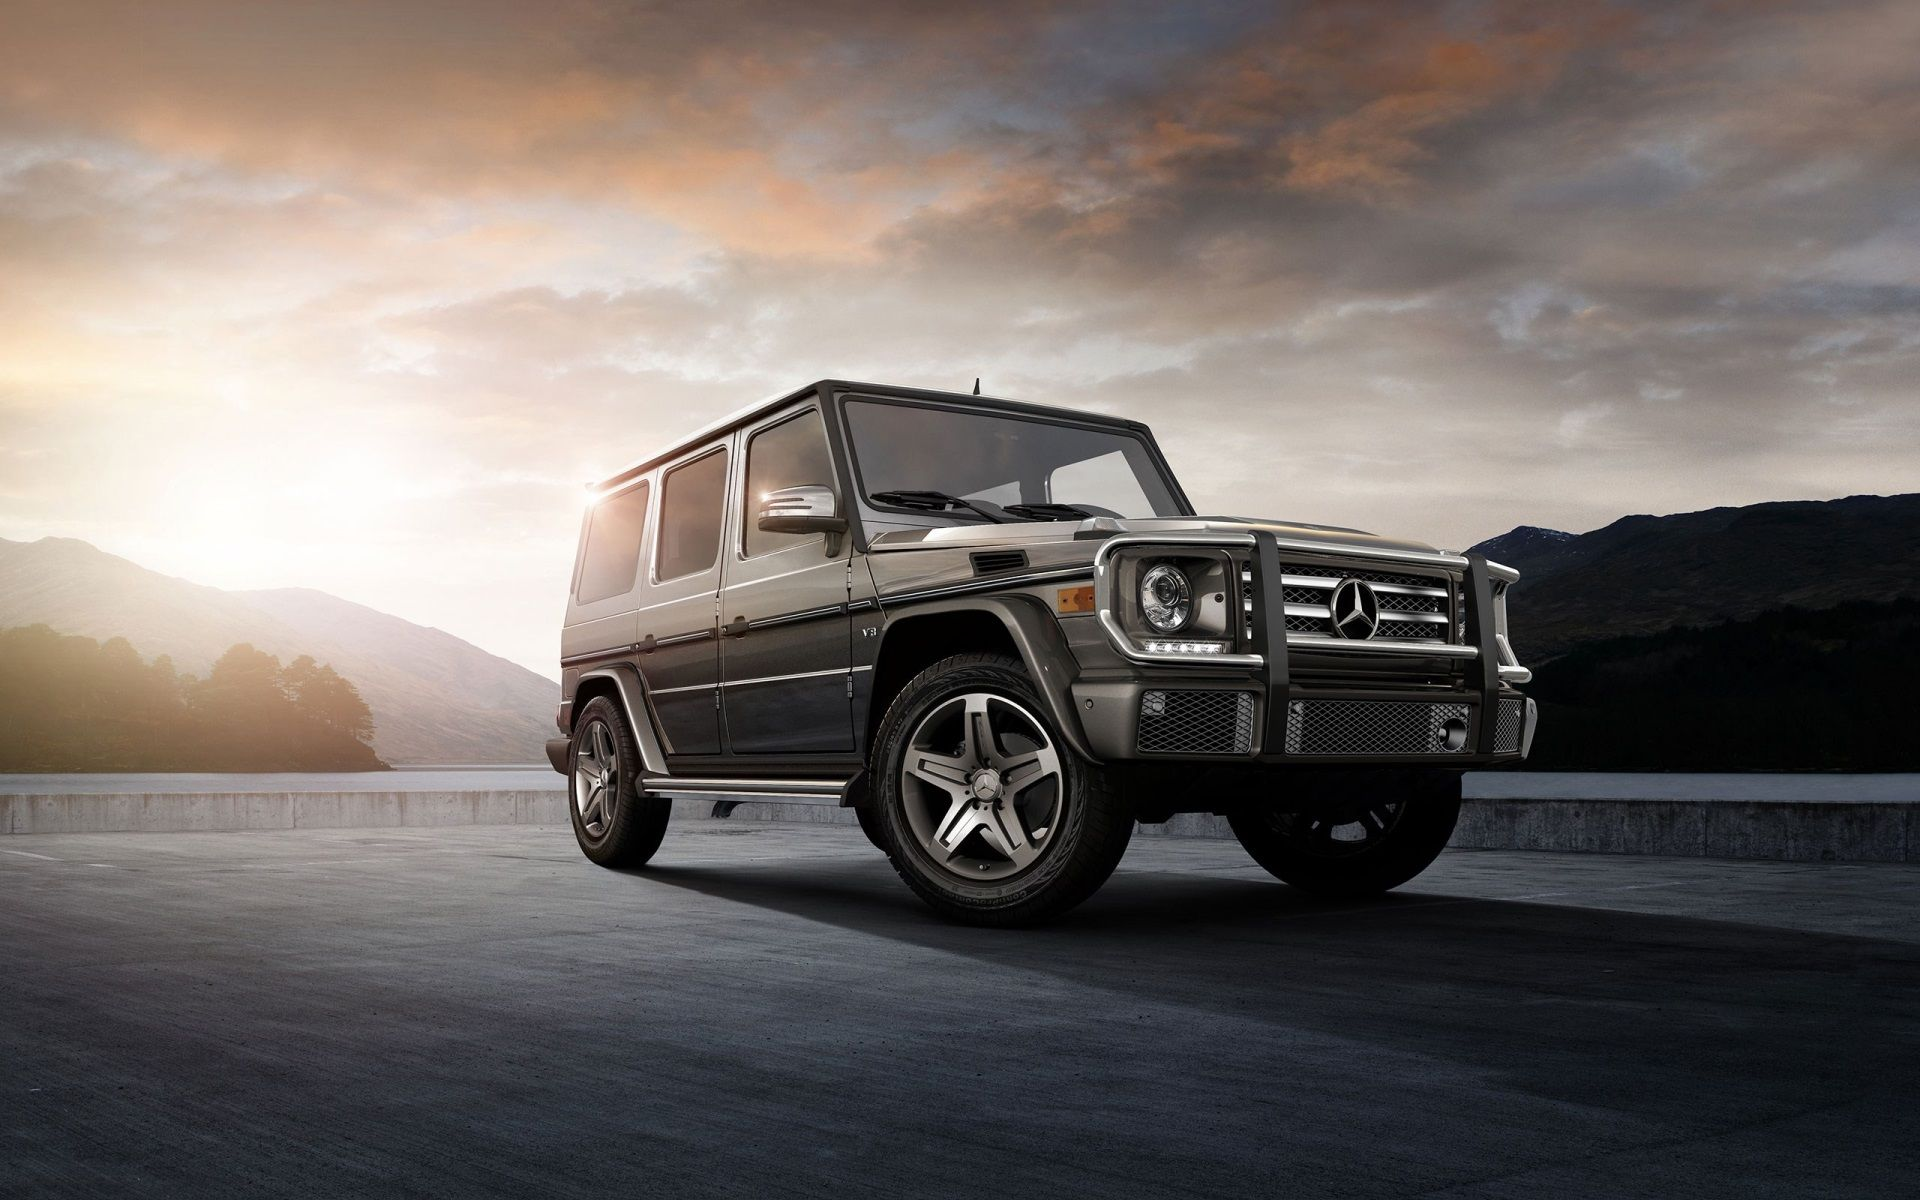 1920x1200 mercedes g class images for desktop background 1920x1200 mercedes g class images for desktop background voltagebd Image collections